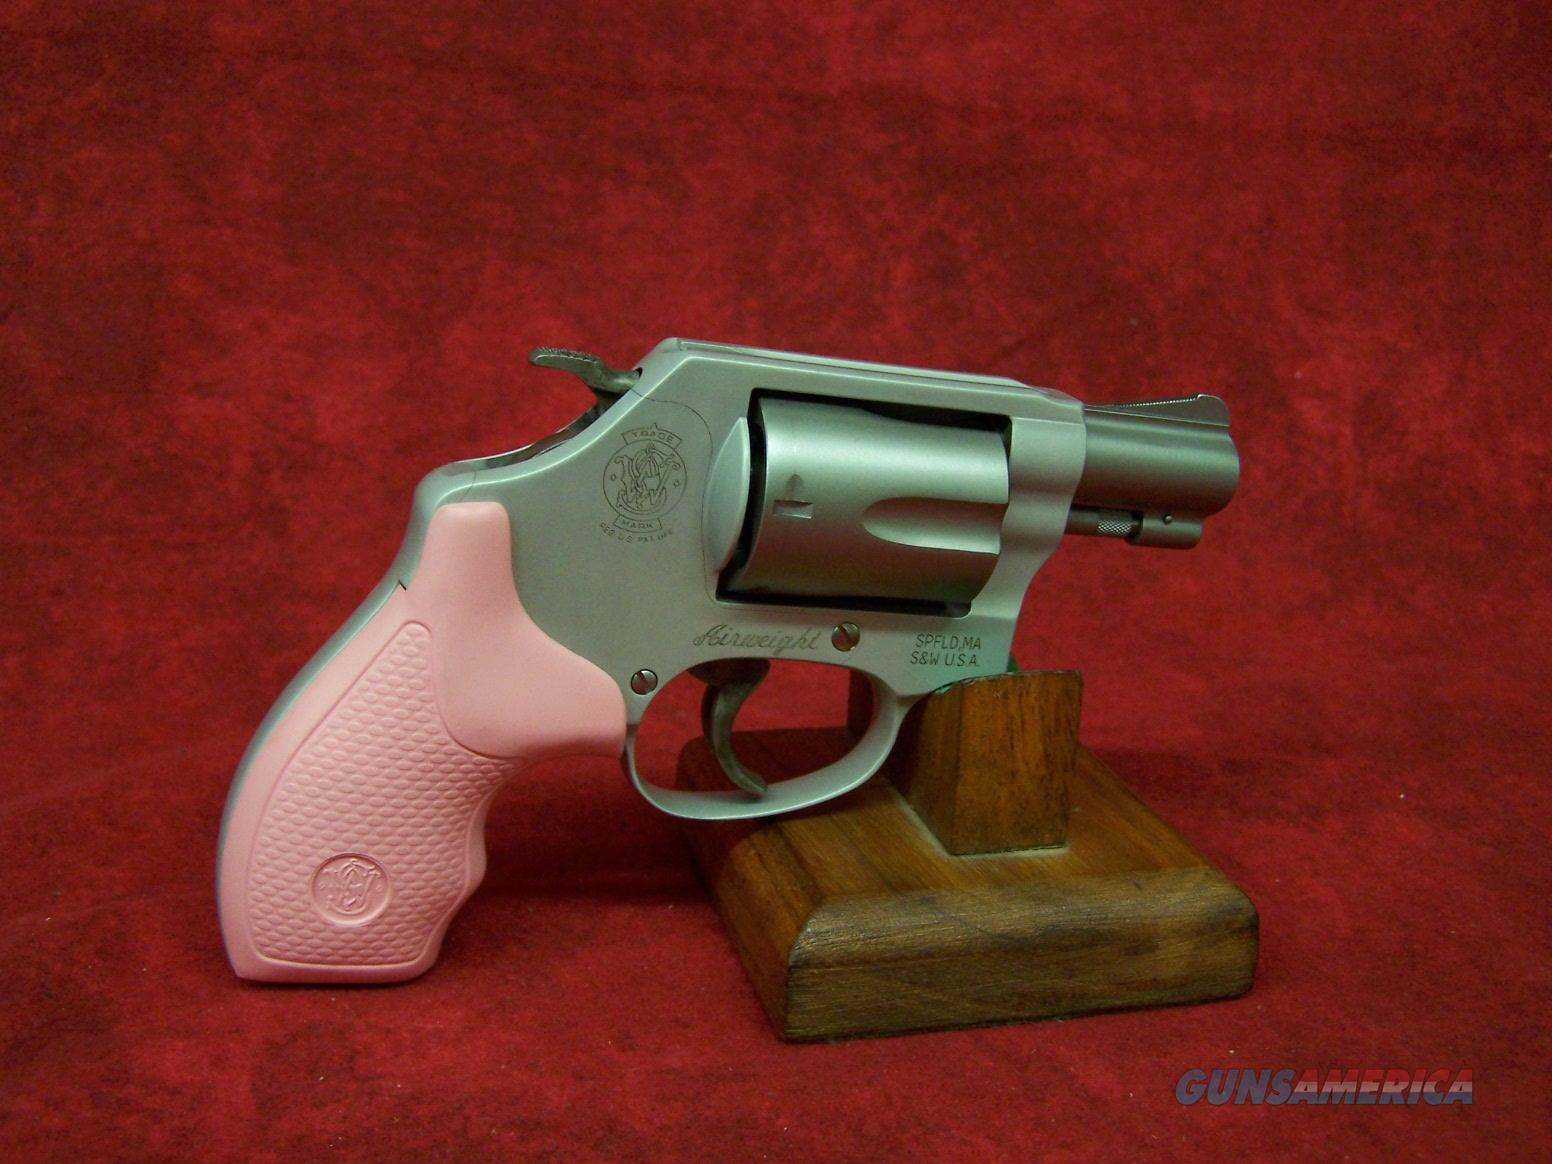 Smith & Wesson Model 637 .38 Special +P 1.875 Inch Barrel SS Matte Finish Pink Grip (150467)  Guns > Pistols > Smith & Wesson Revolvers > Pocket Pistols